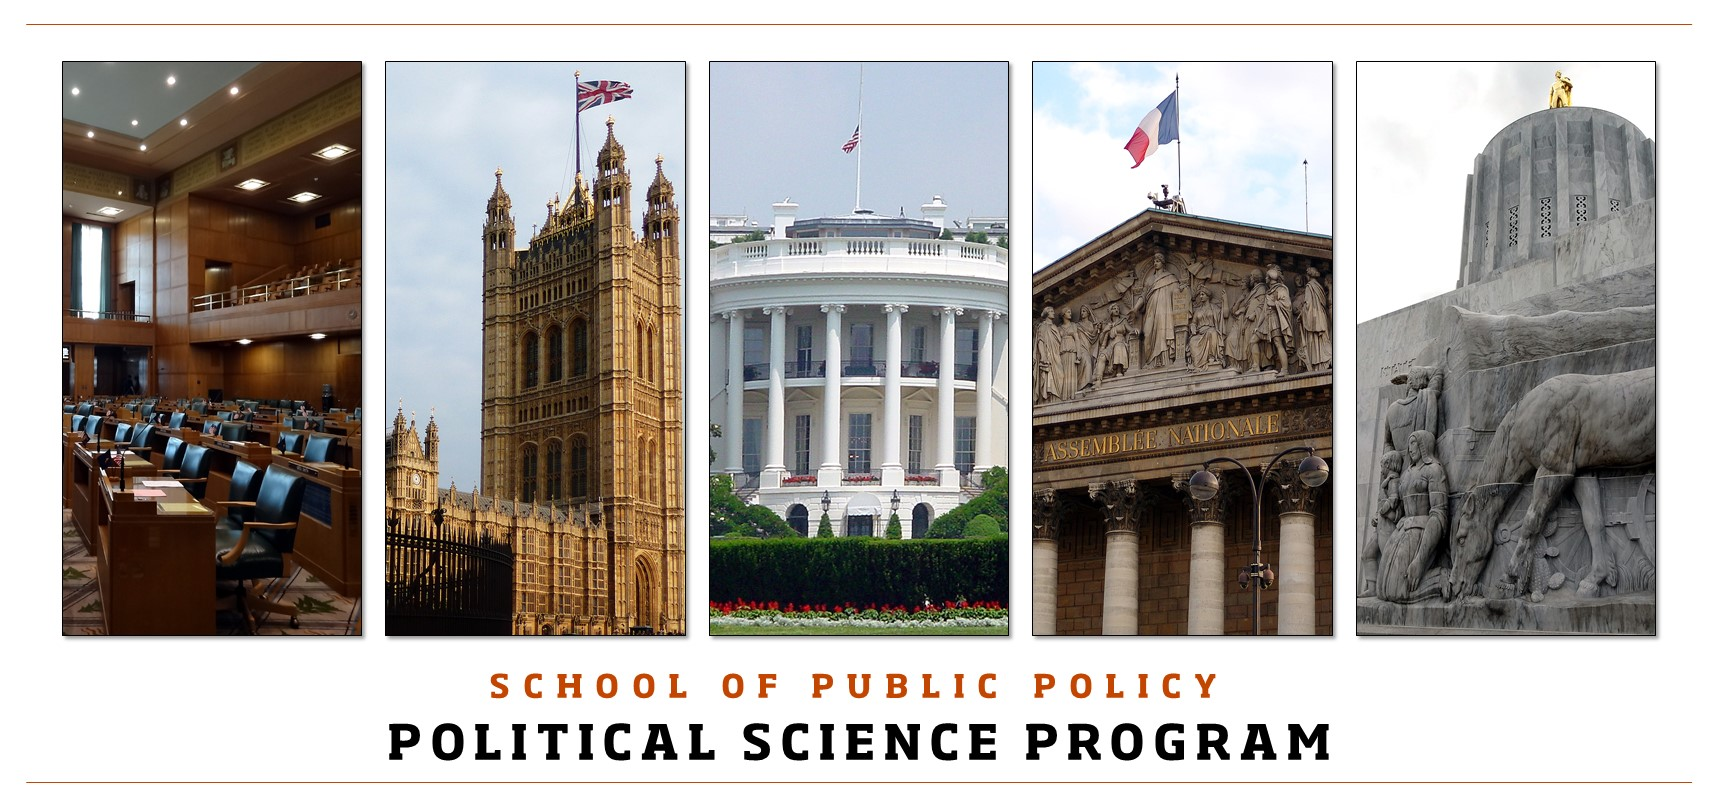 School of Public Policy Political Science Program